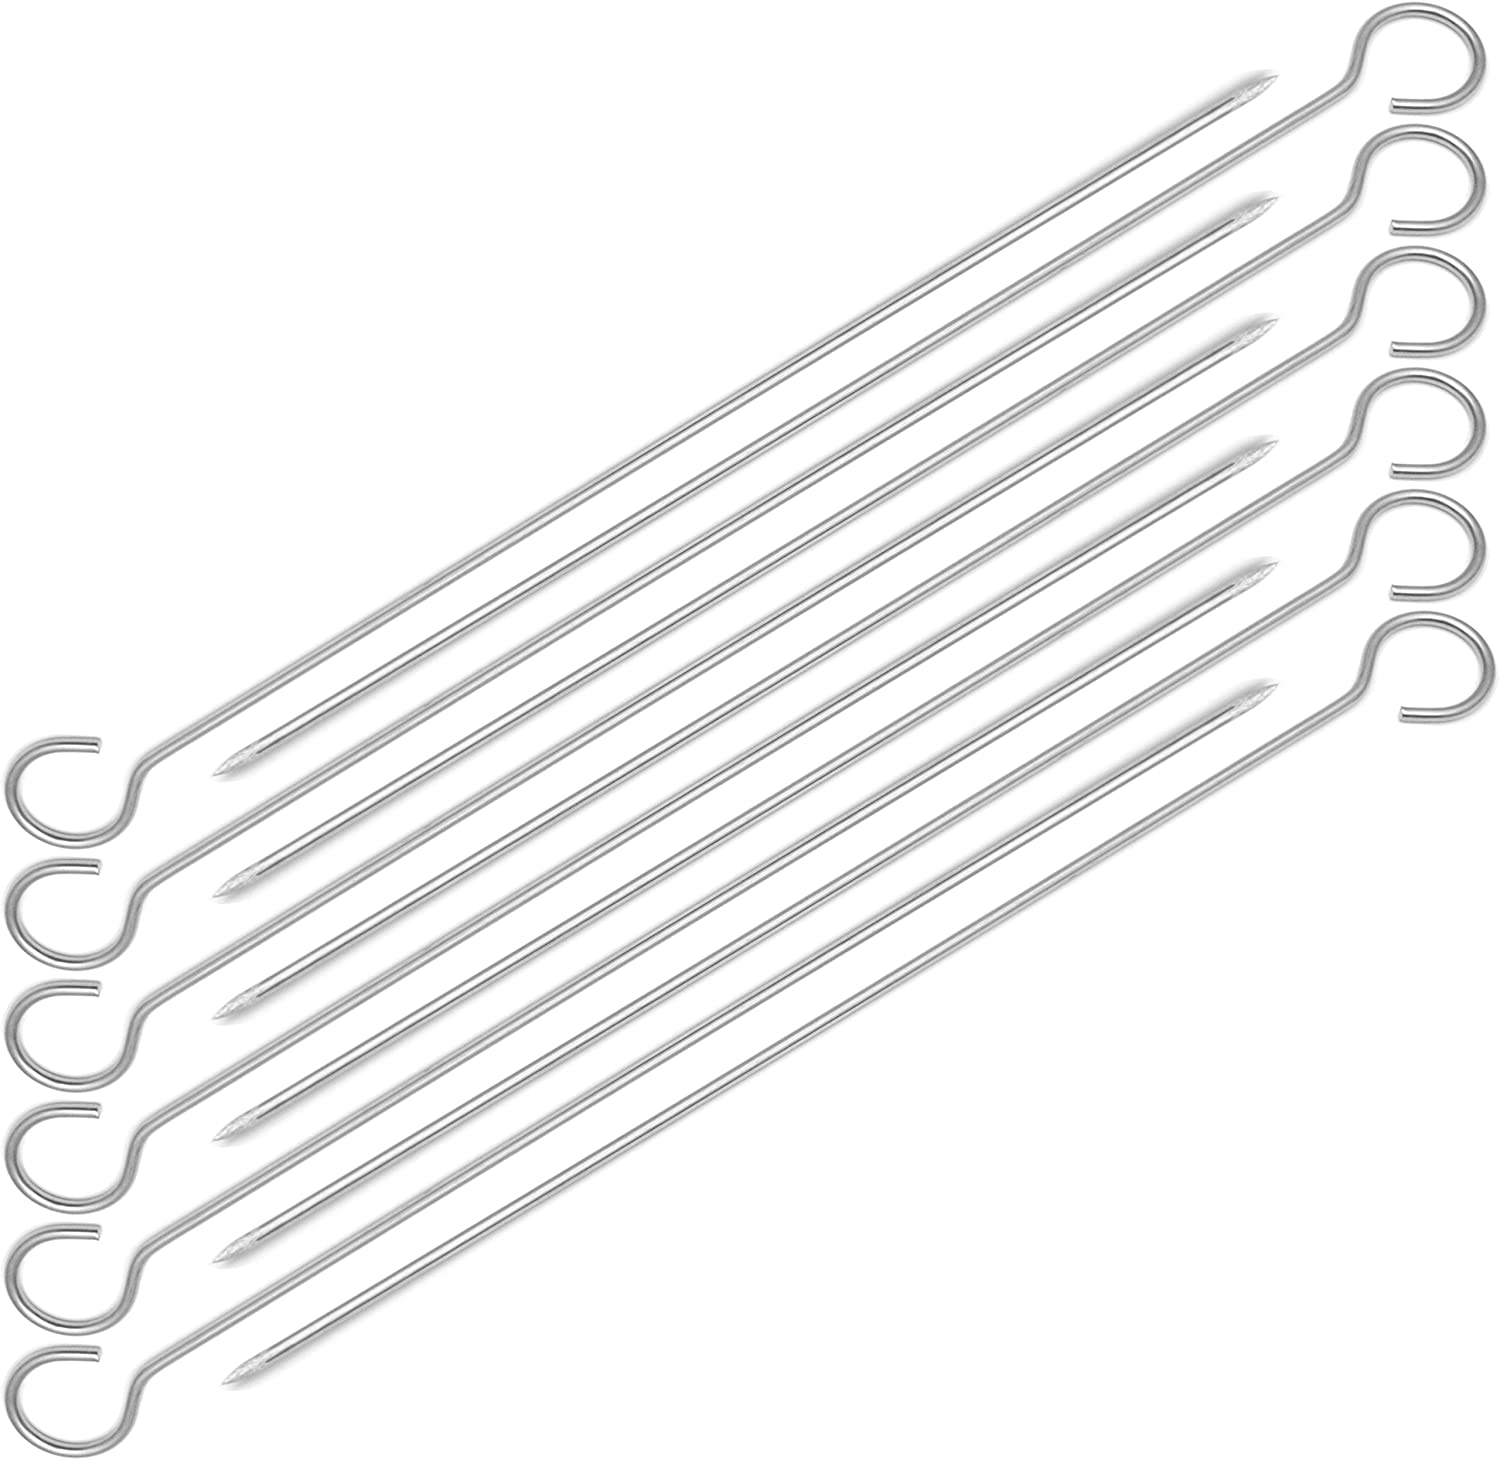 12-inch Stainless Steel Round Shish Kebab BBQ Skewers Pack of (12) CharbabGrill PB_201_12R